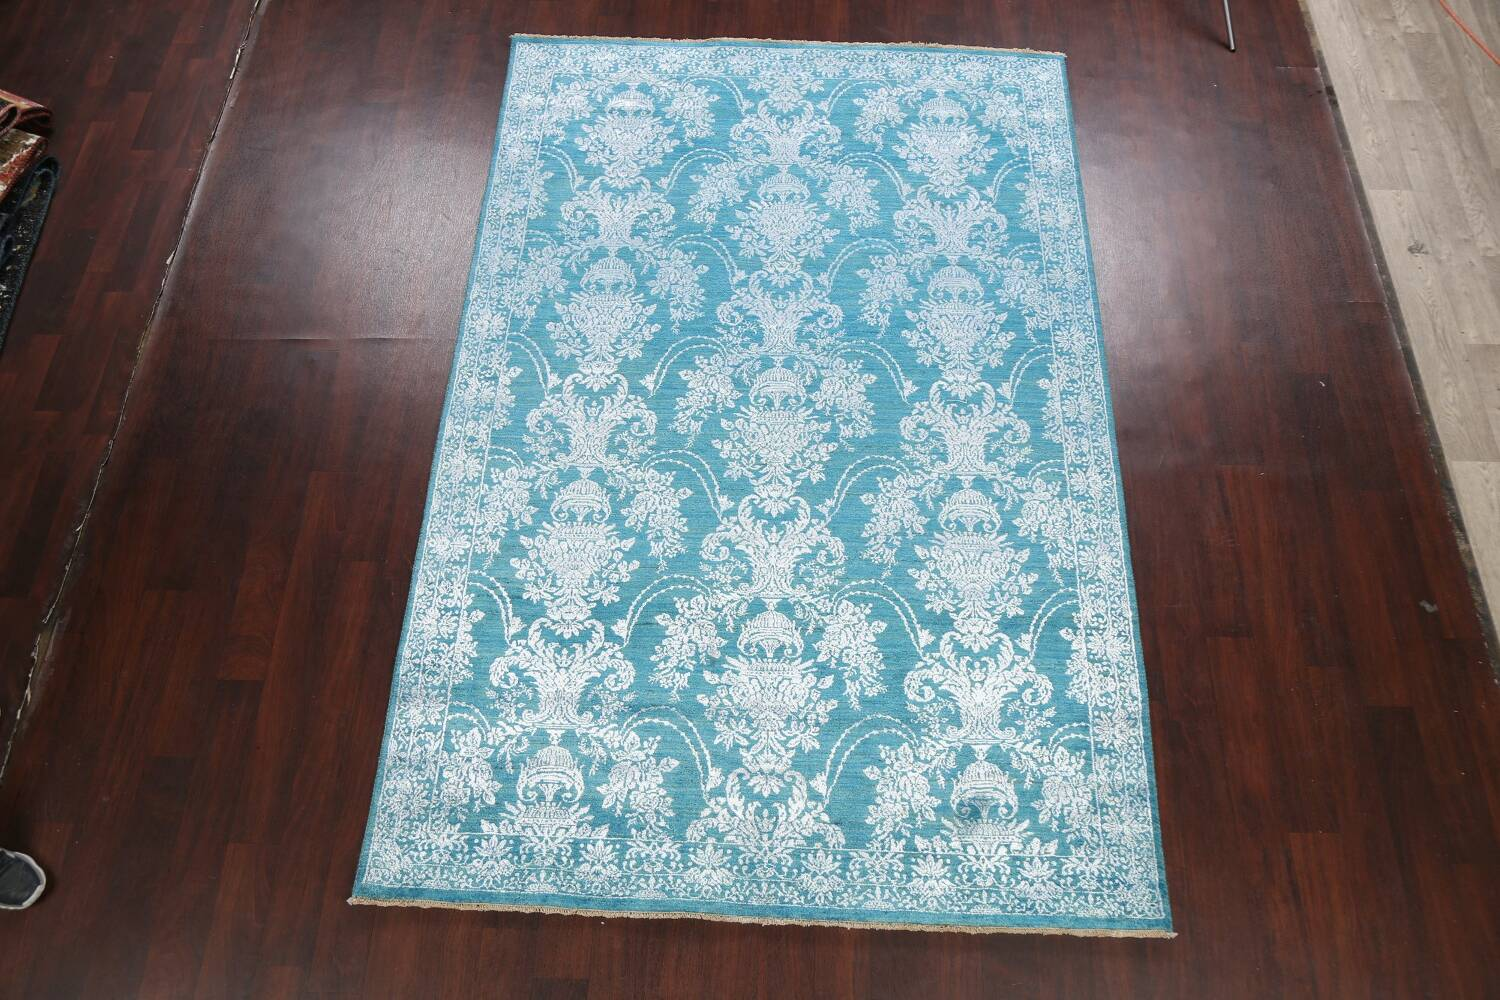 All-Over Floral Art & Craft Oriental Area Rug 6x9 image 2